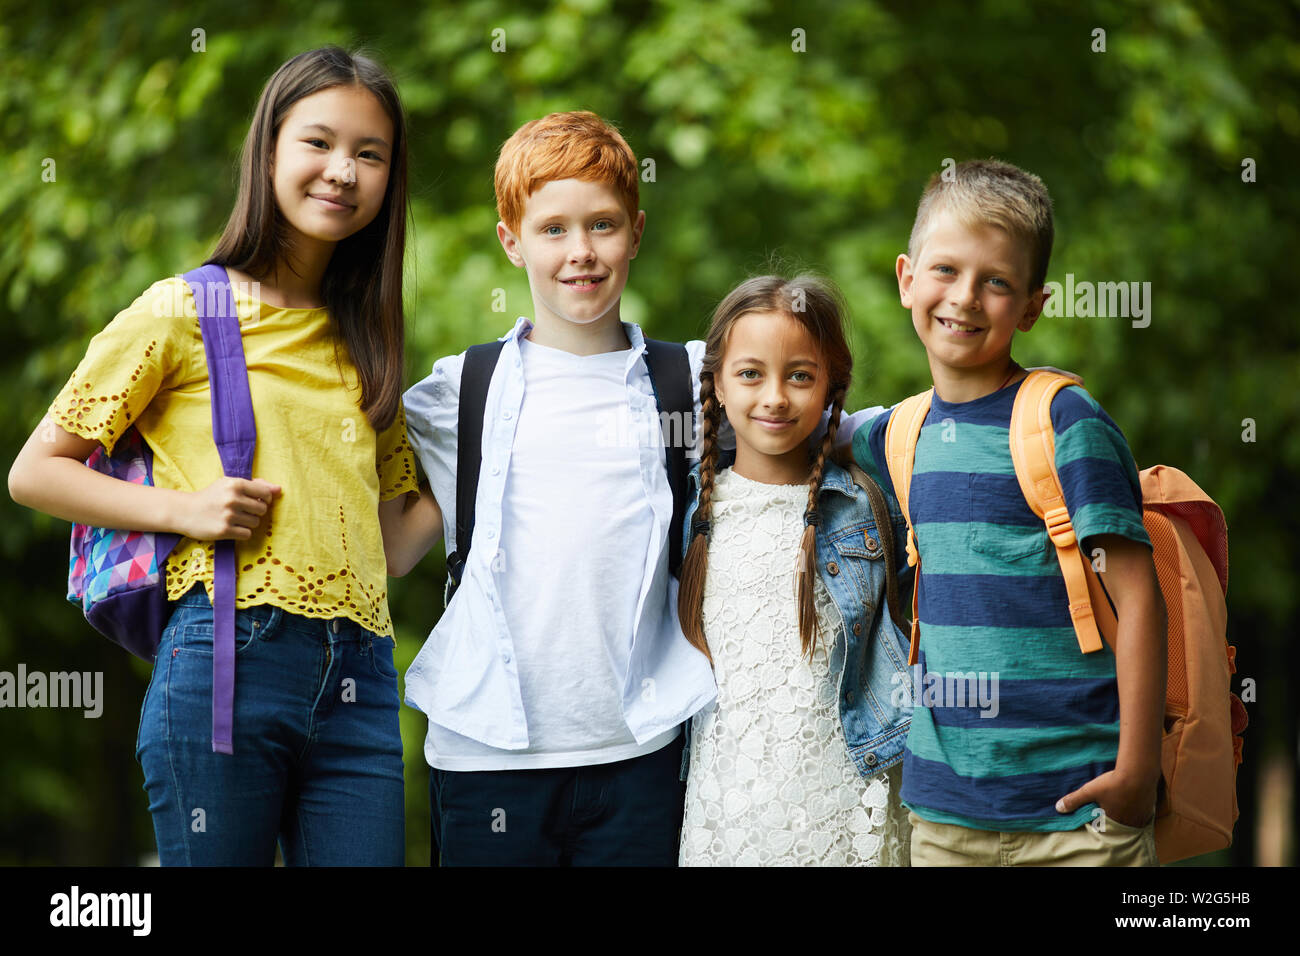 Group of happy interracial friends with satchels standing in park and embracing each other while posing for camera Stock Photo